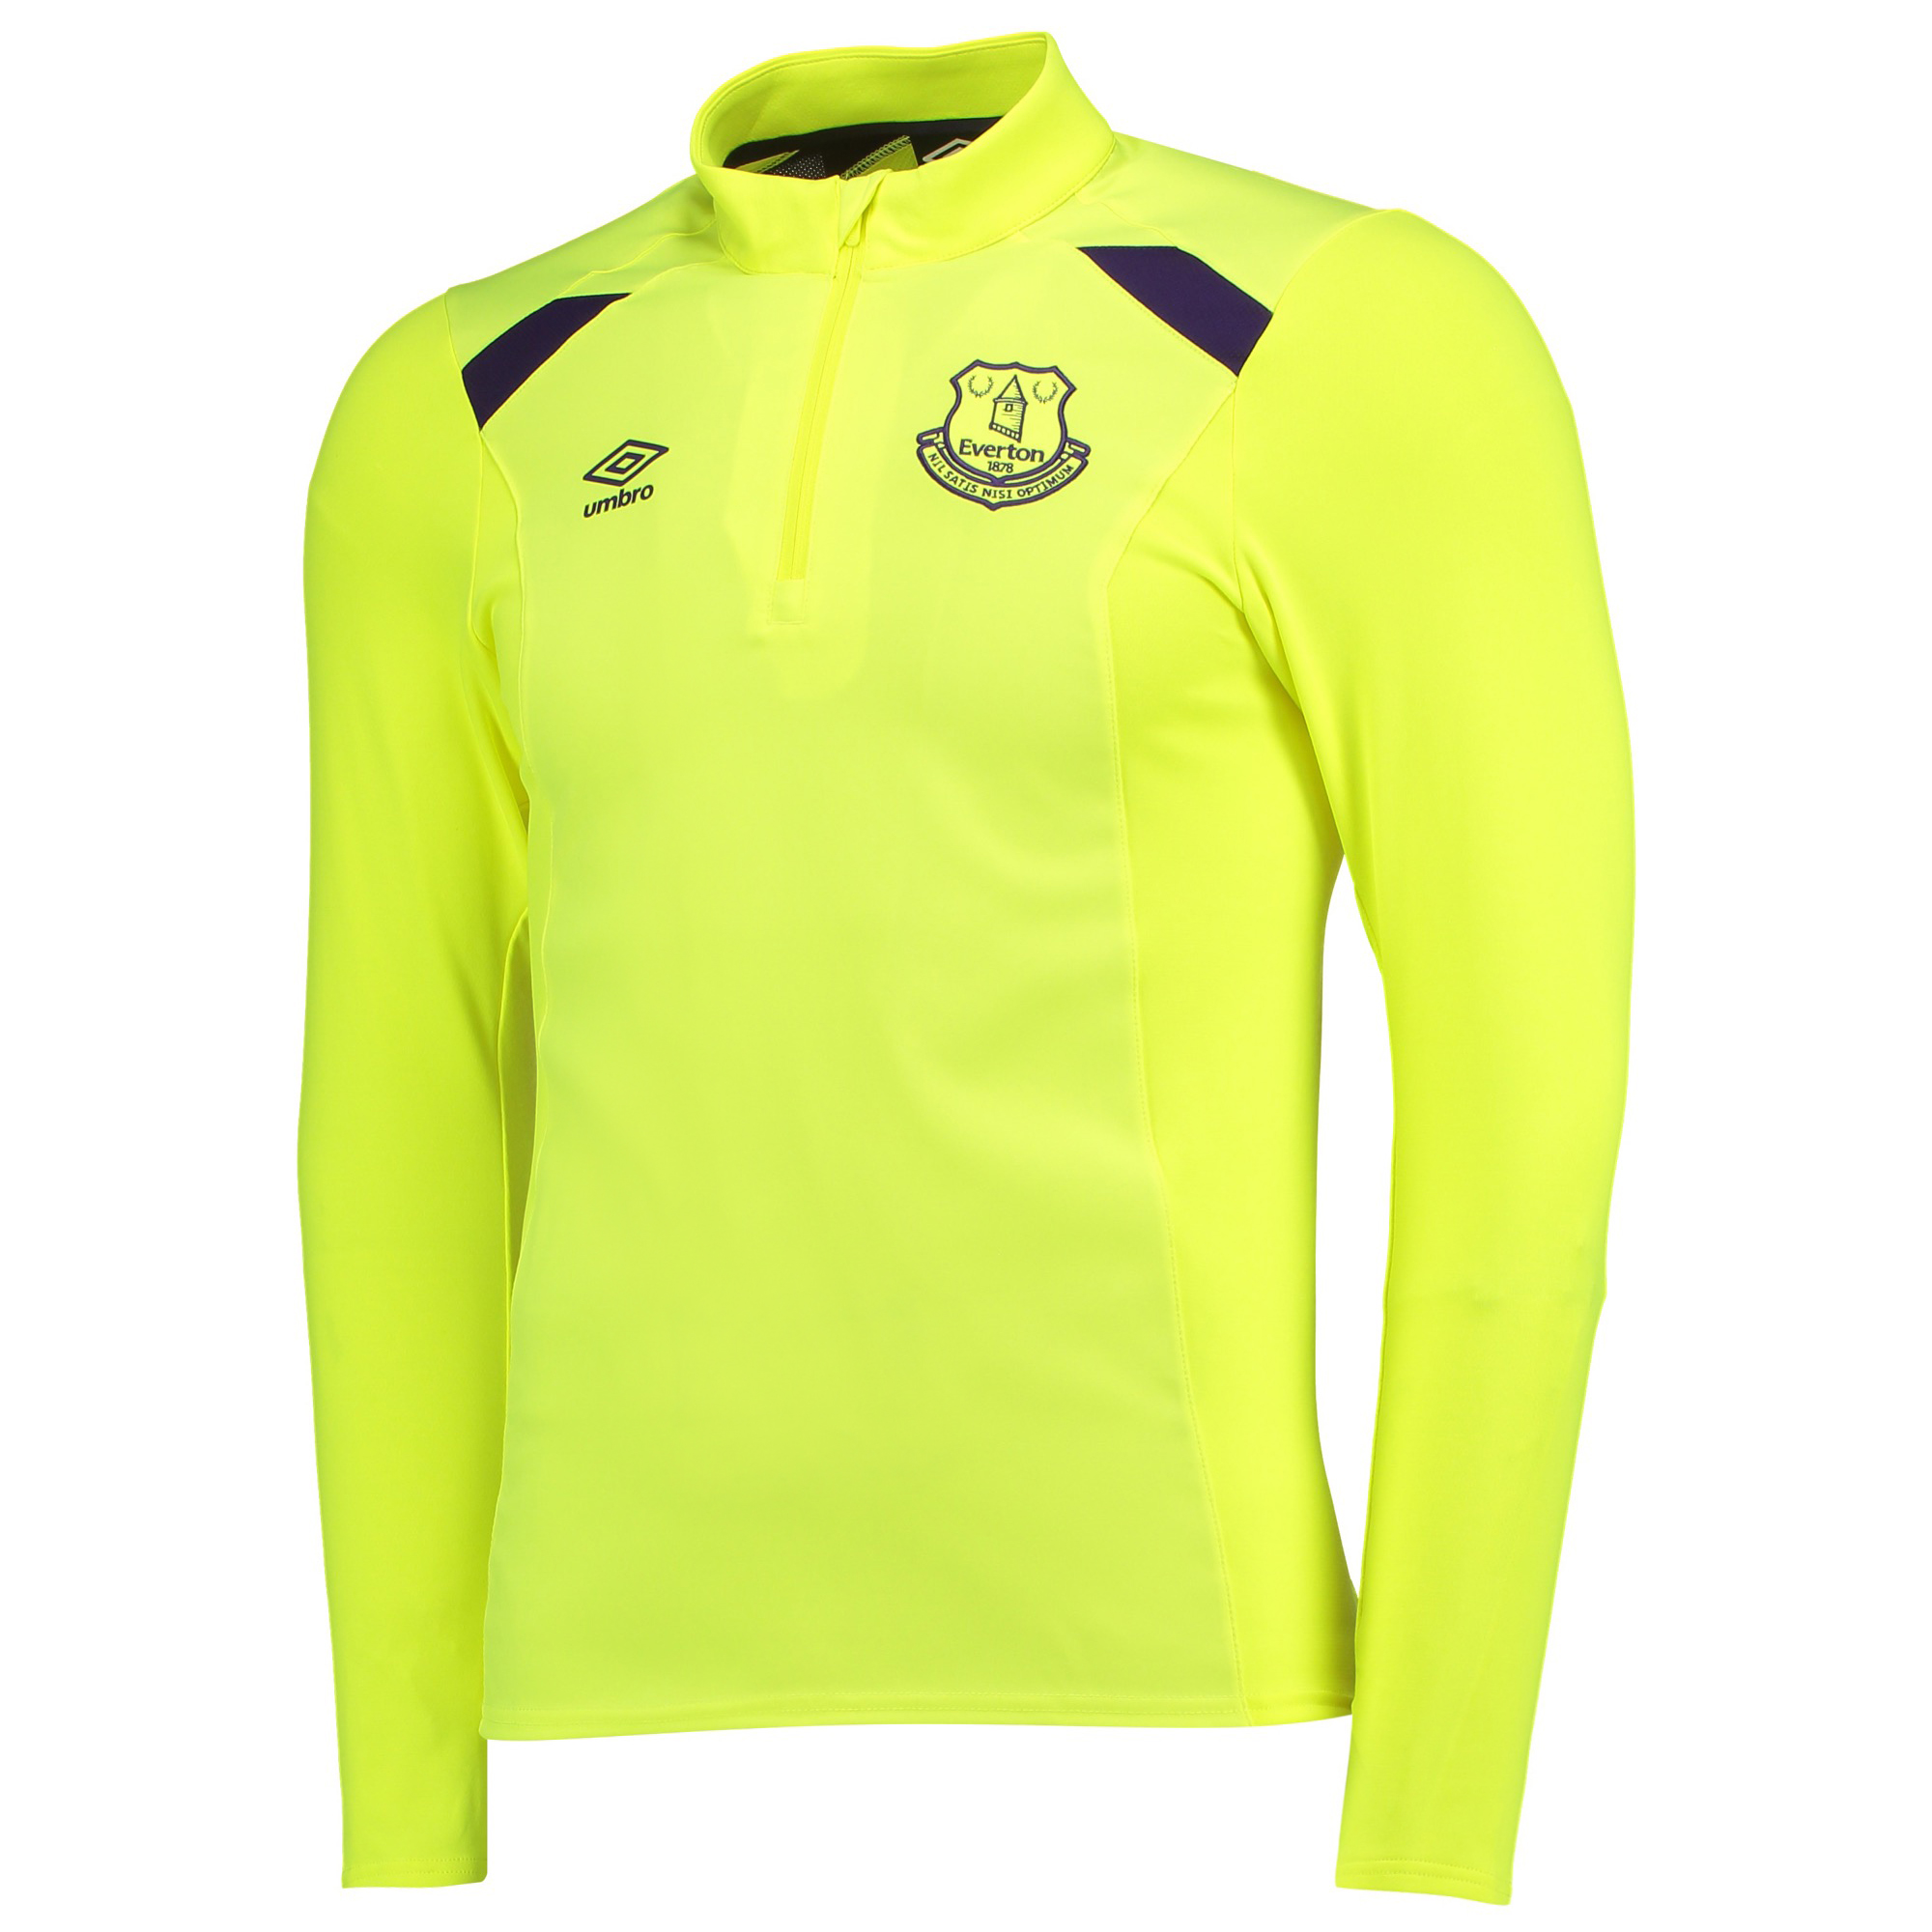 Everton Training Half Zip Top - Junior - Safety Yellow/Parachute Purpl